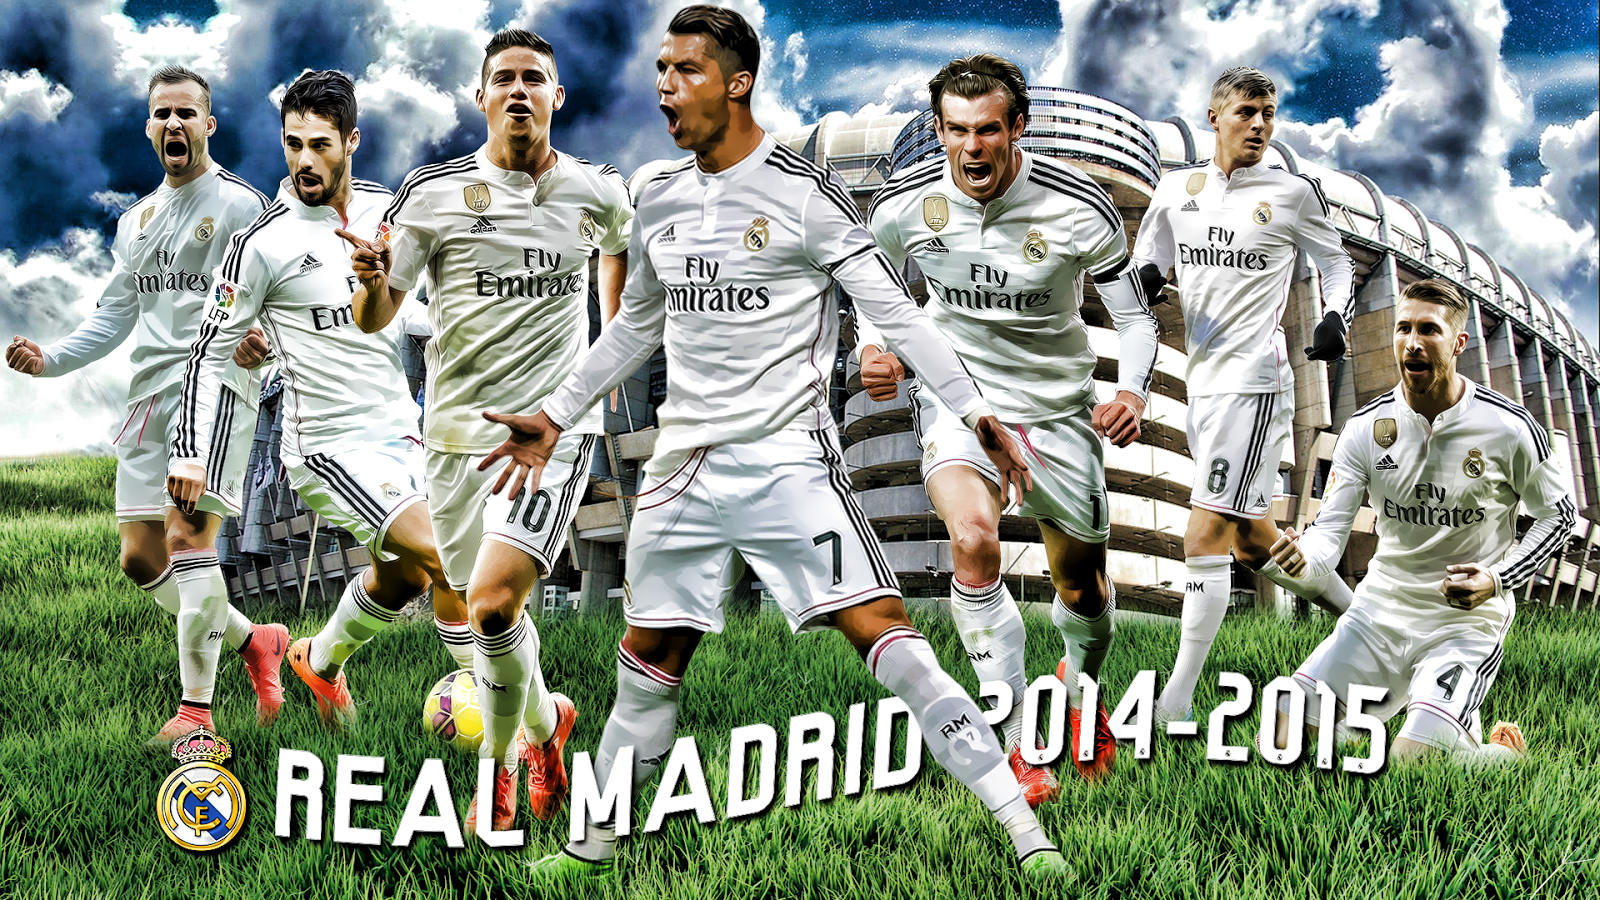 Real Madrid 2014 15 By Szwejzi